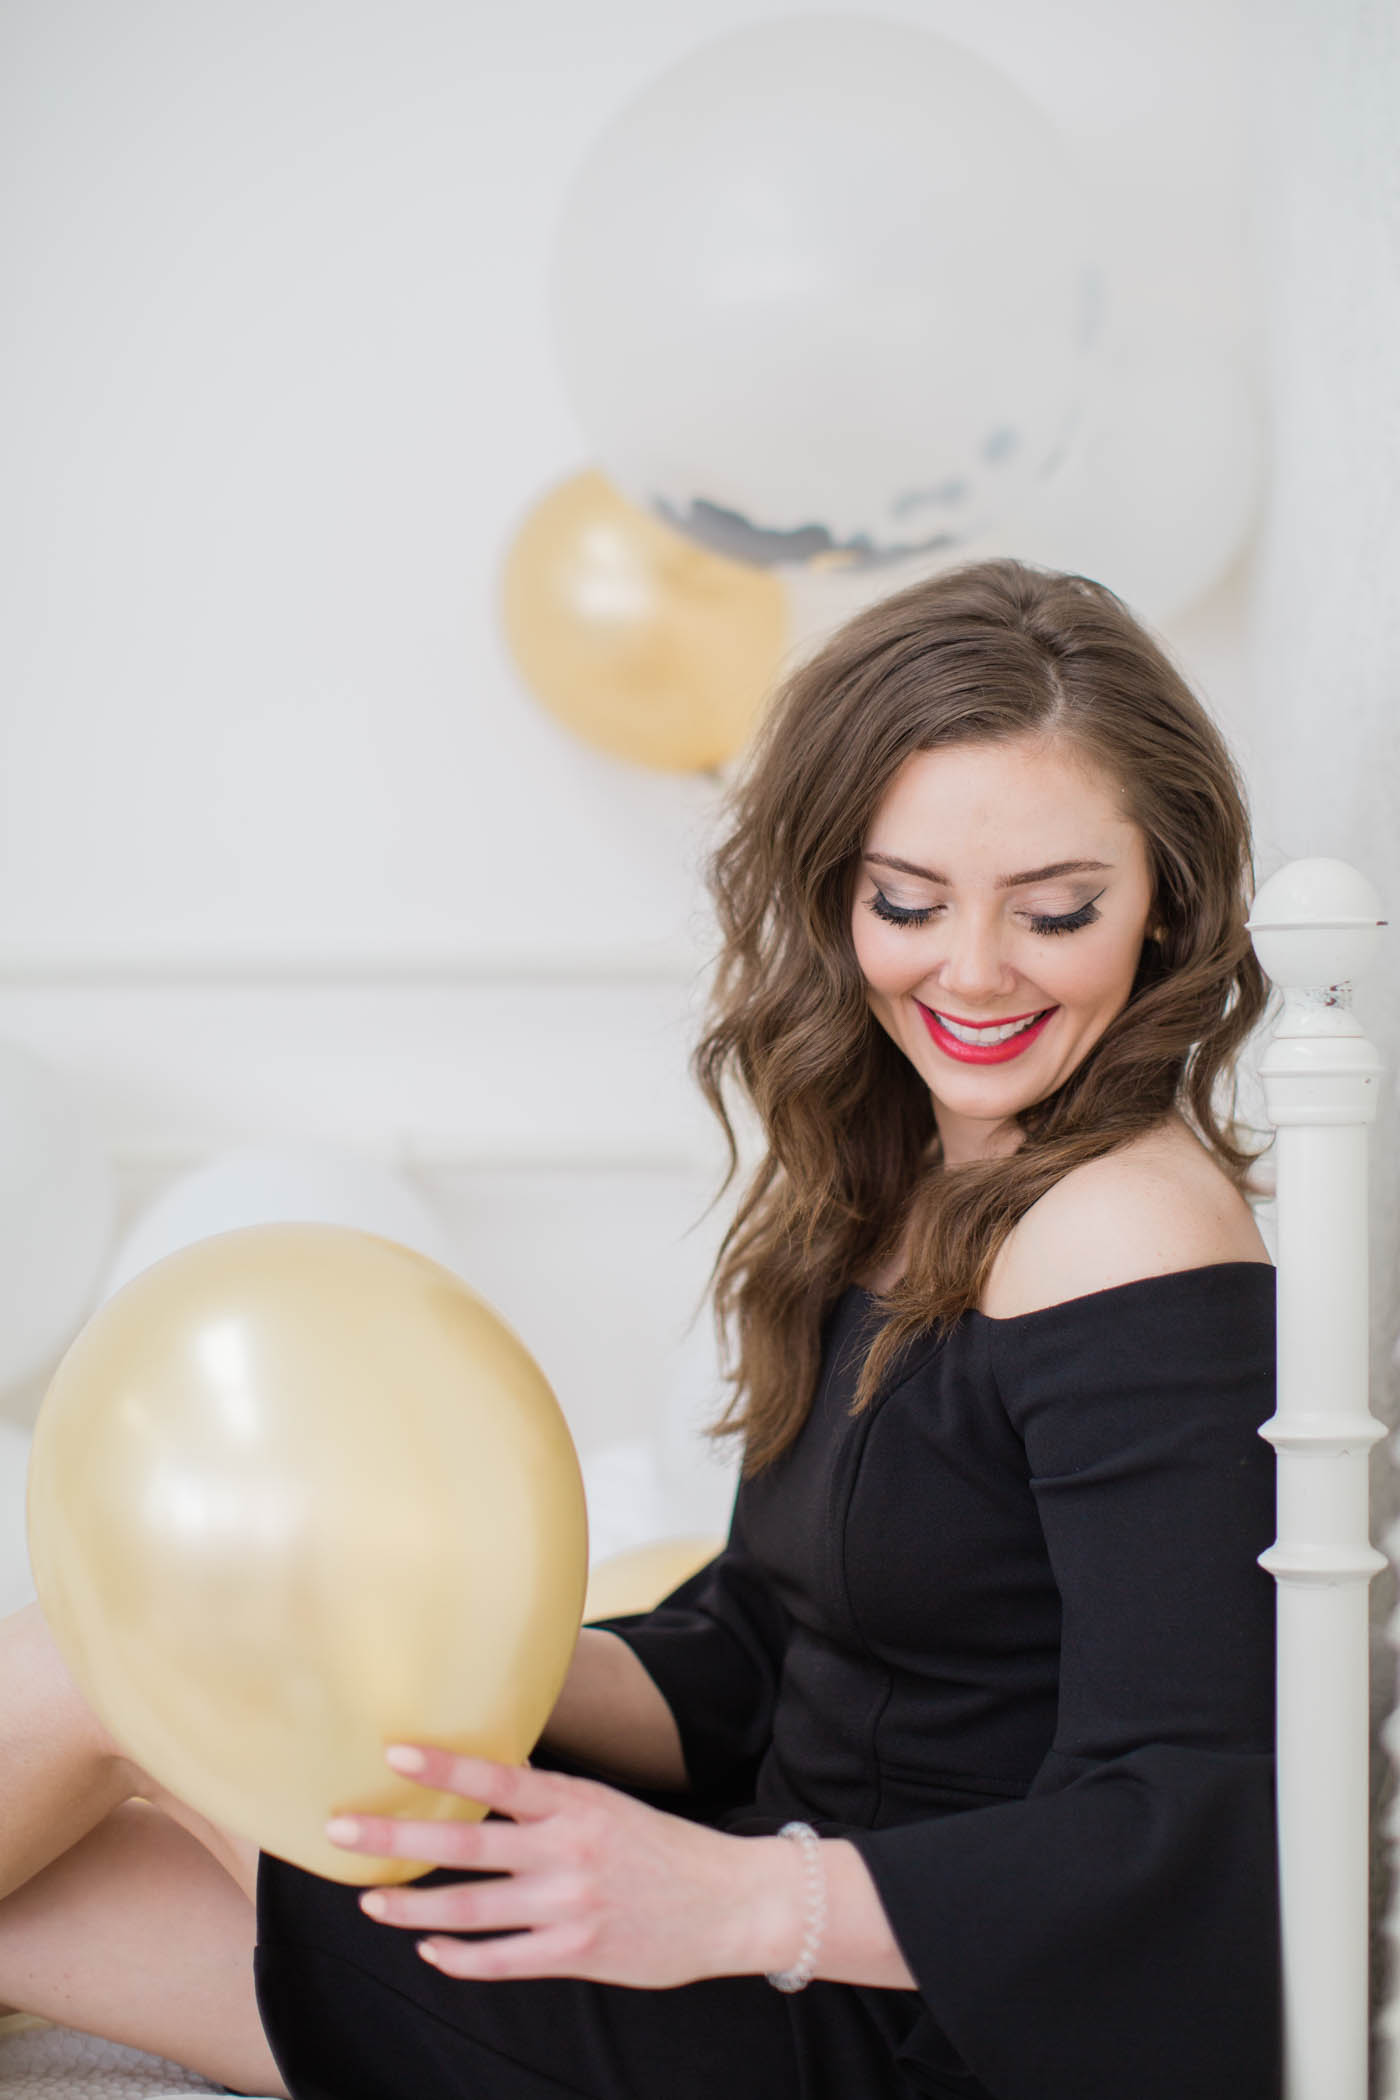 birthday-photoshoot-balloons